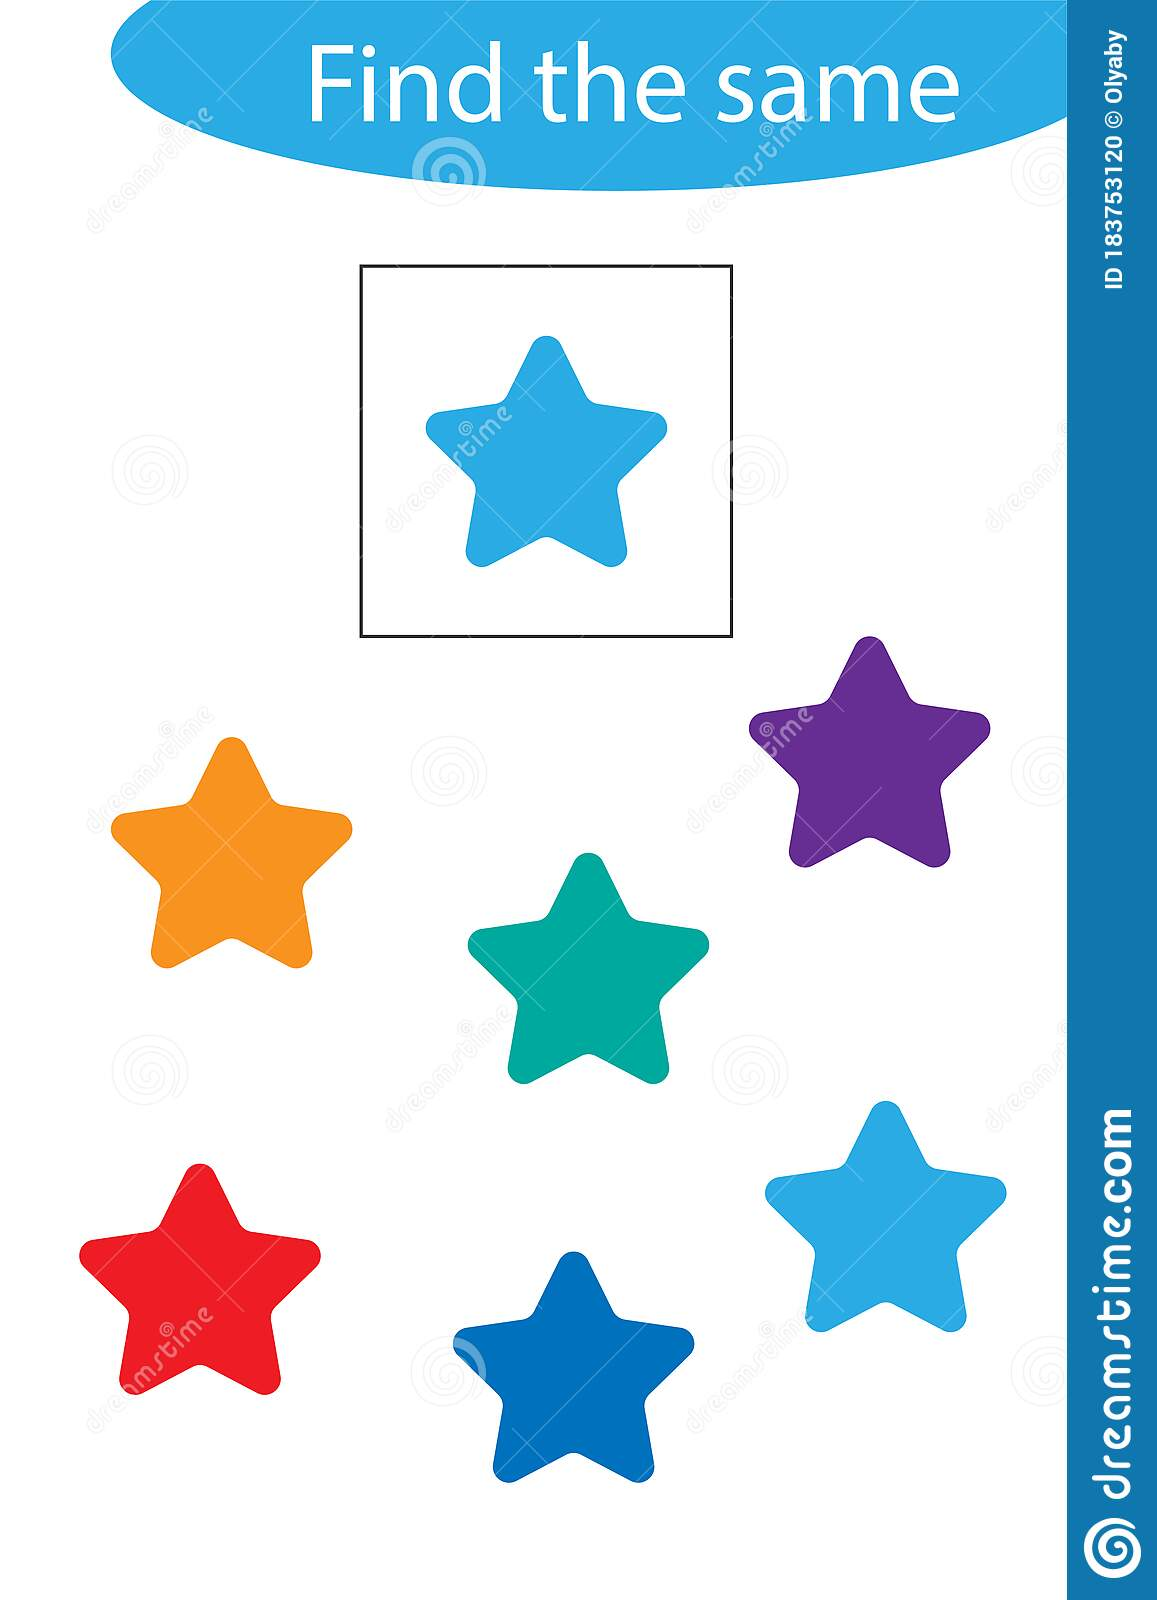 Find The Same Star Fun Education Game For Children